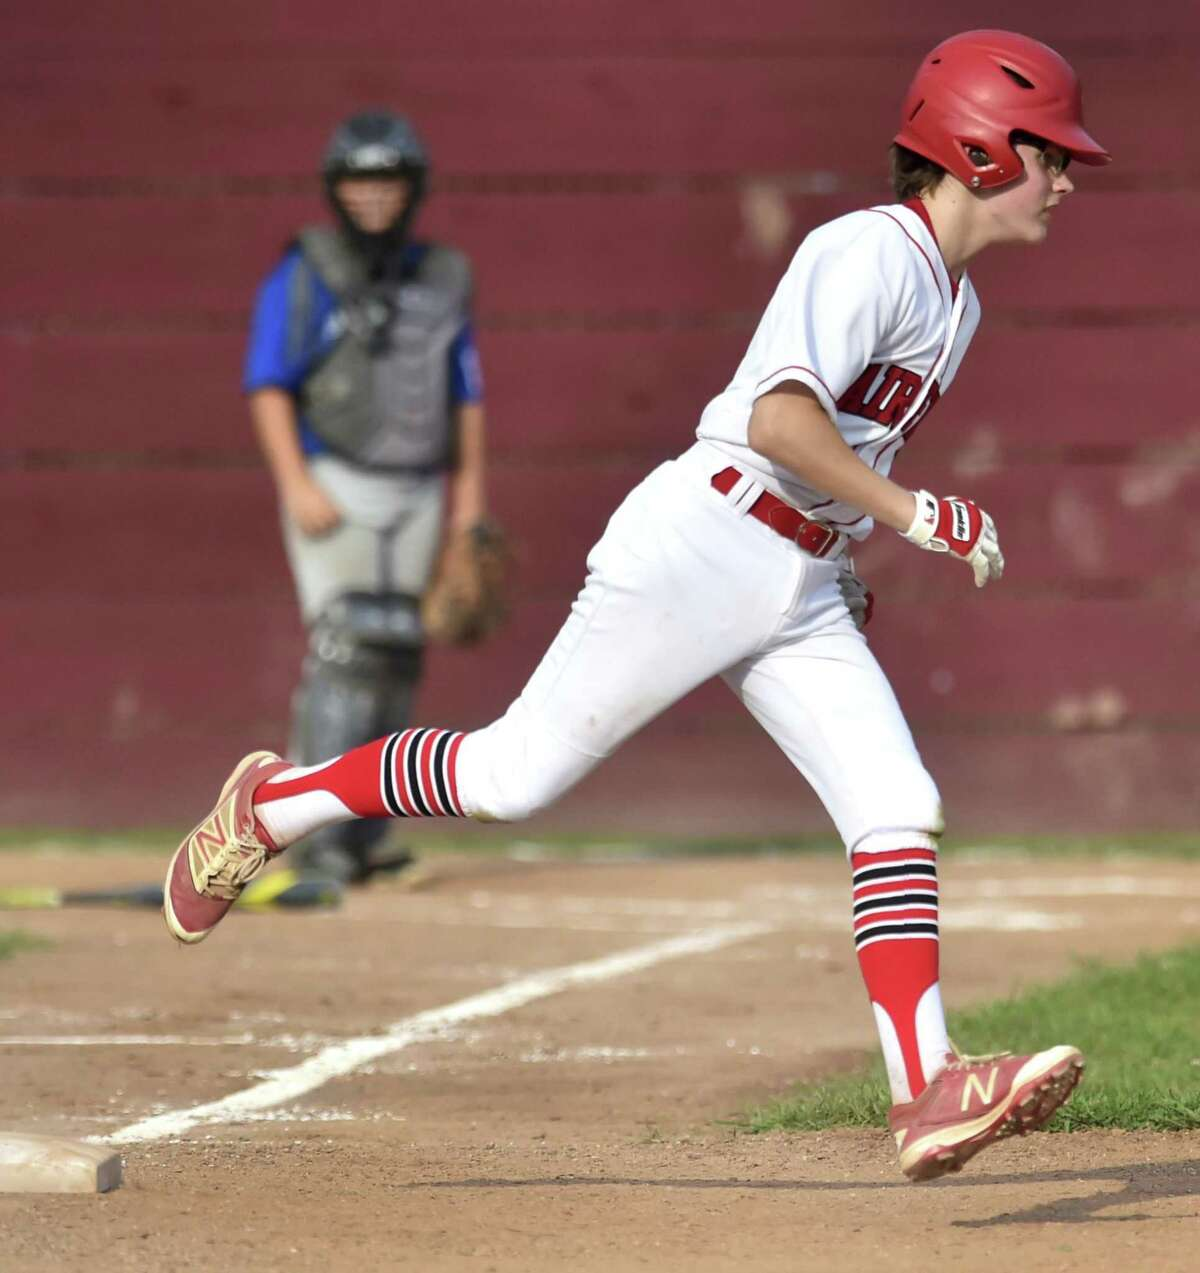 East Lyme, Connecticut - Friday, July 27, 2018: Pierce Cowles of Fairfield American rounds first base after hitting a home run during third inning baseball action against Manchester Little League during the winners bracket of the Little League State playoffs Friday evening at Presidents Field in East Lyme. Fairfield American defeated Manchester 4-1.